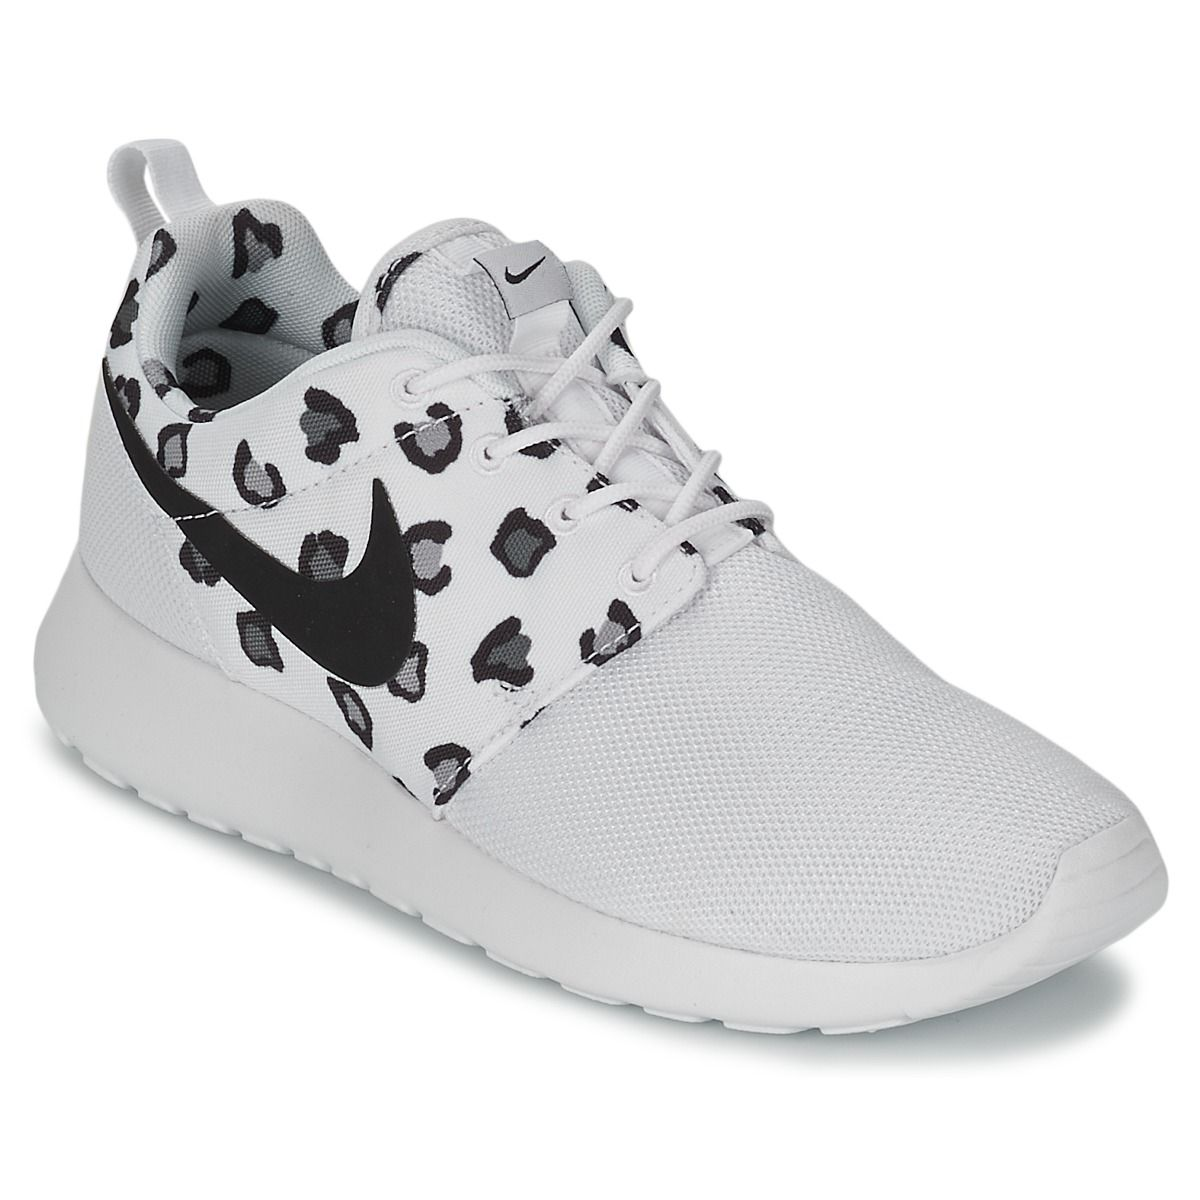 Baskets basses Nike ROSHE RUN Blanc   promo Noir prix promo  Baskets Femme 4be092